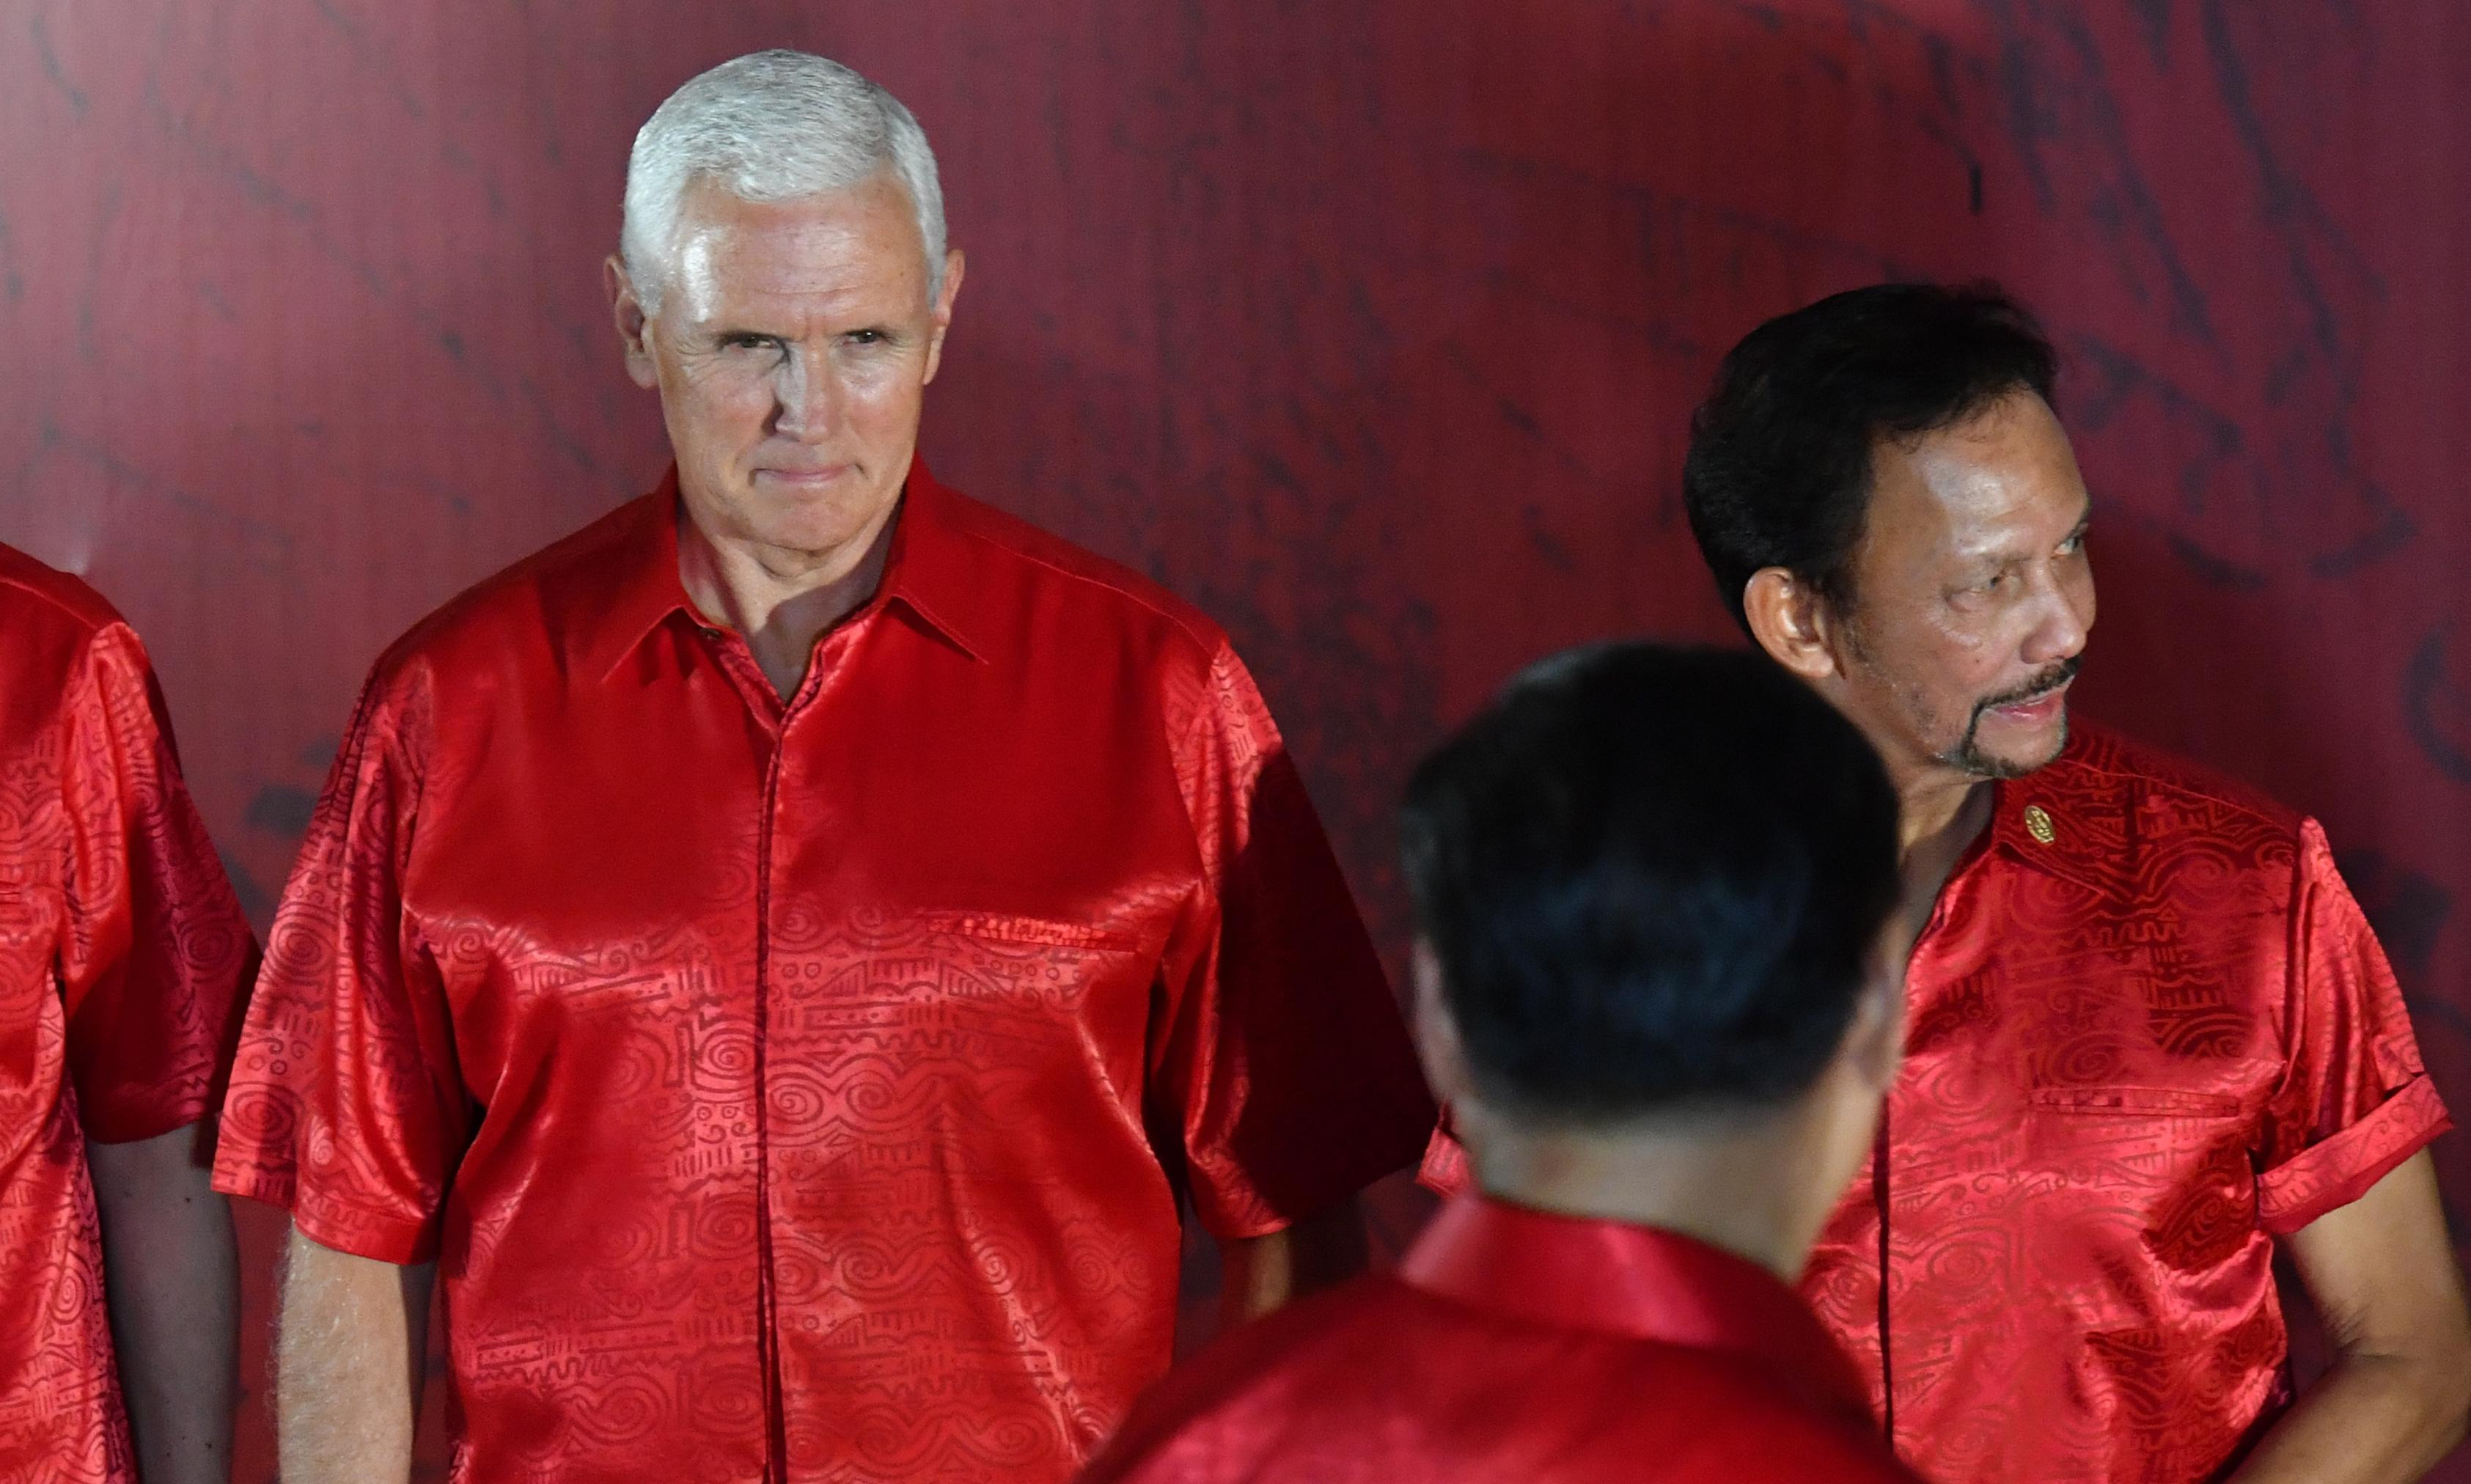 Apec summit: Mike Pence warns of China's 'constricting belt' and 'one-way road'